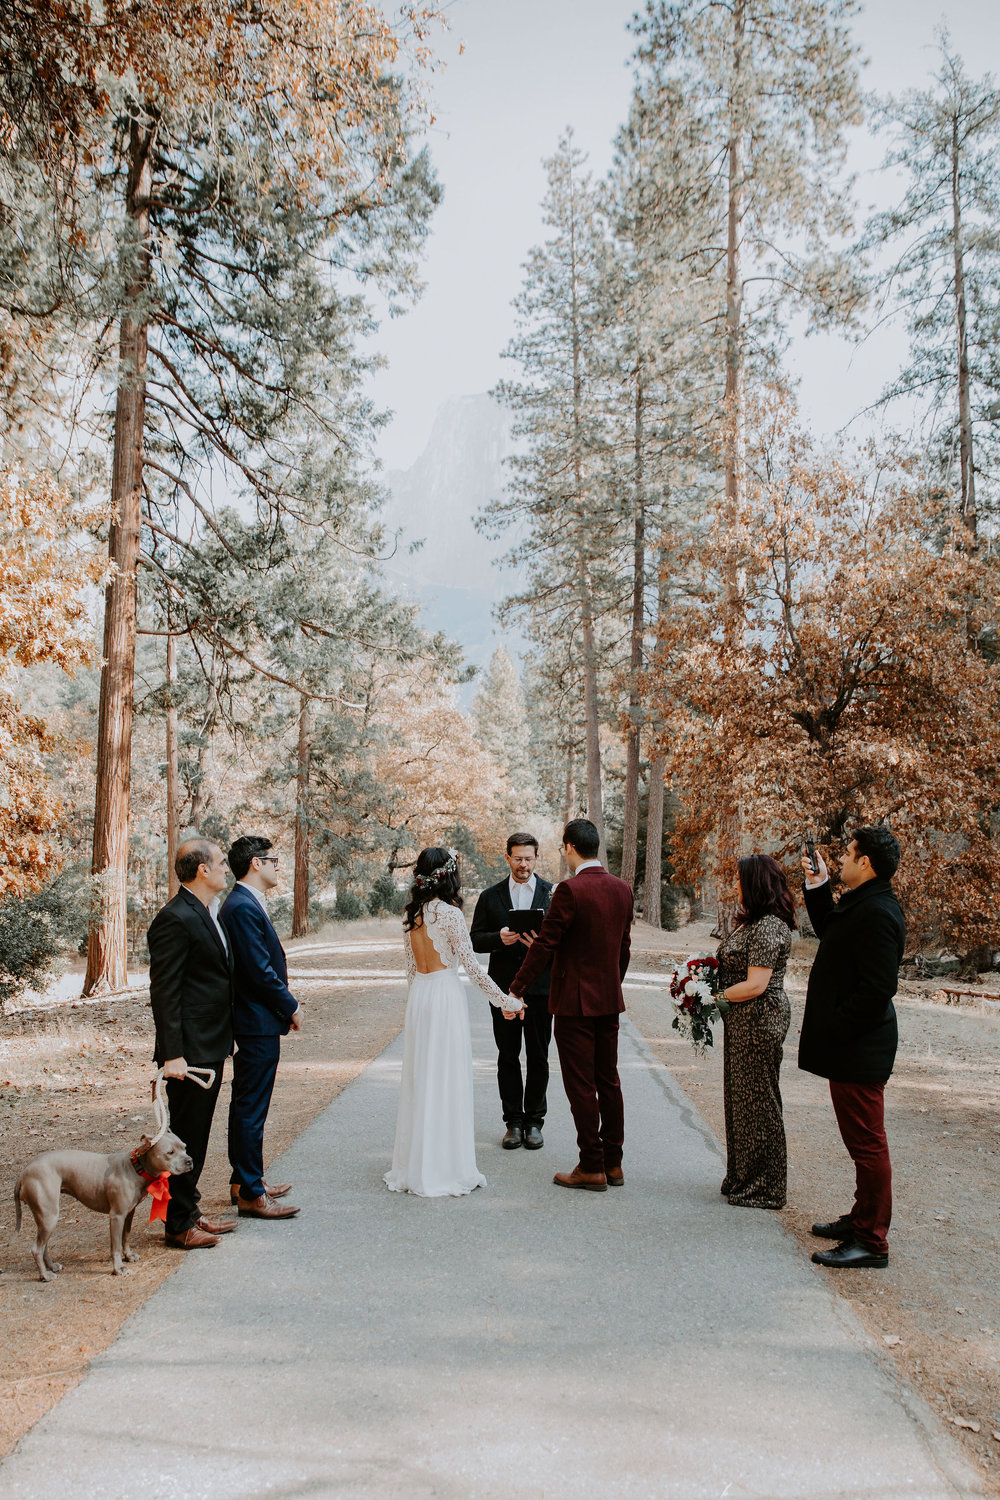 Yosemite National Park Elopement Ceremony May Iosotaluno Photography  Half Dome